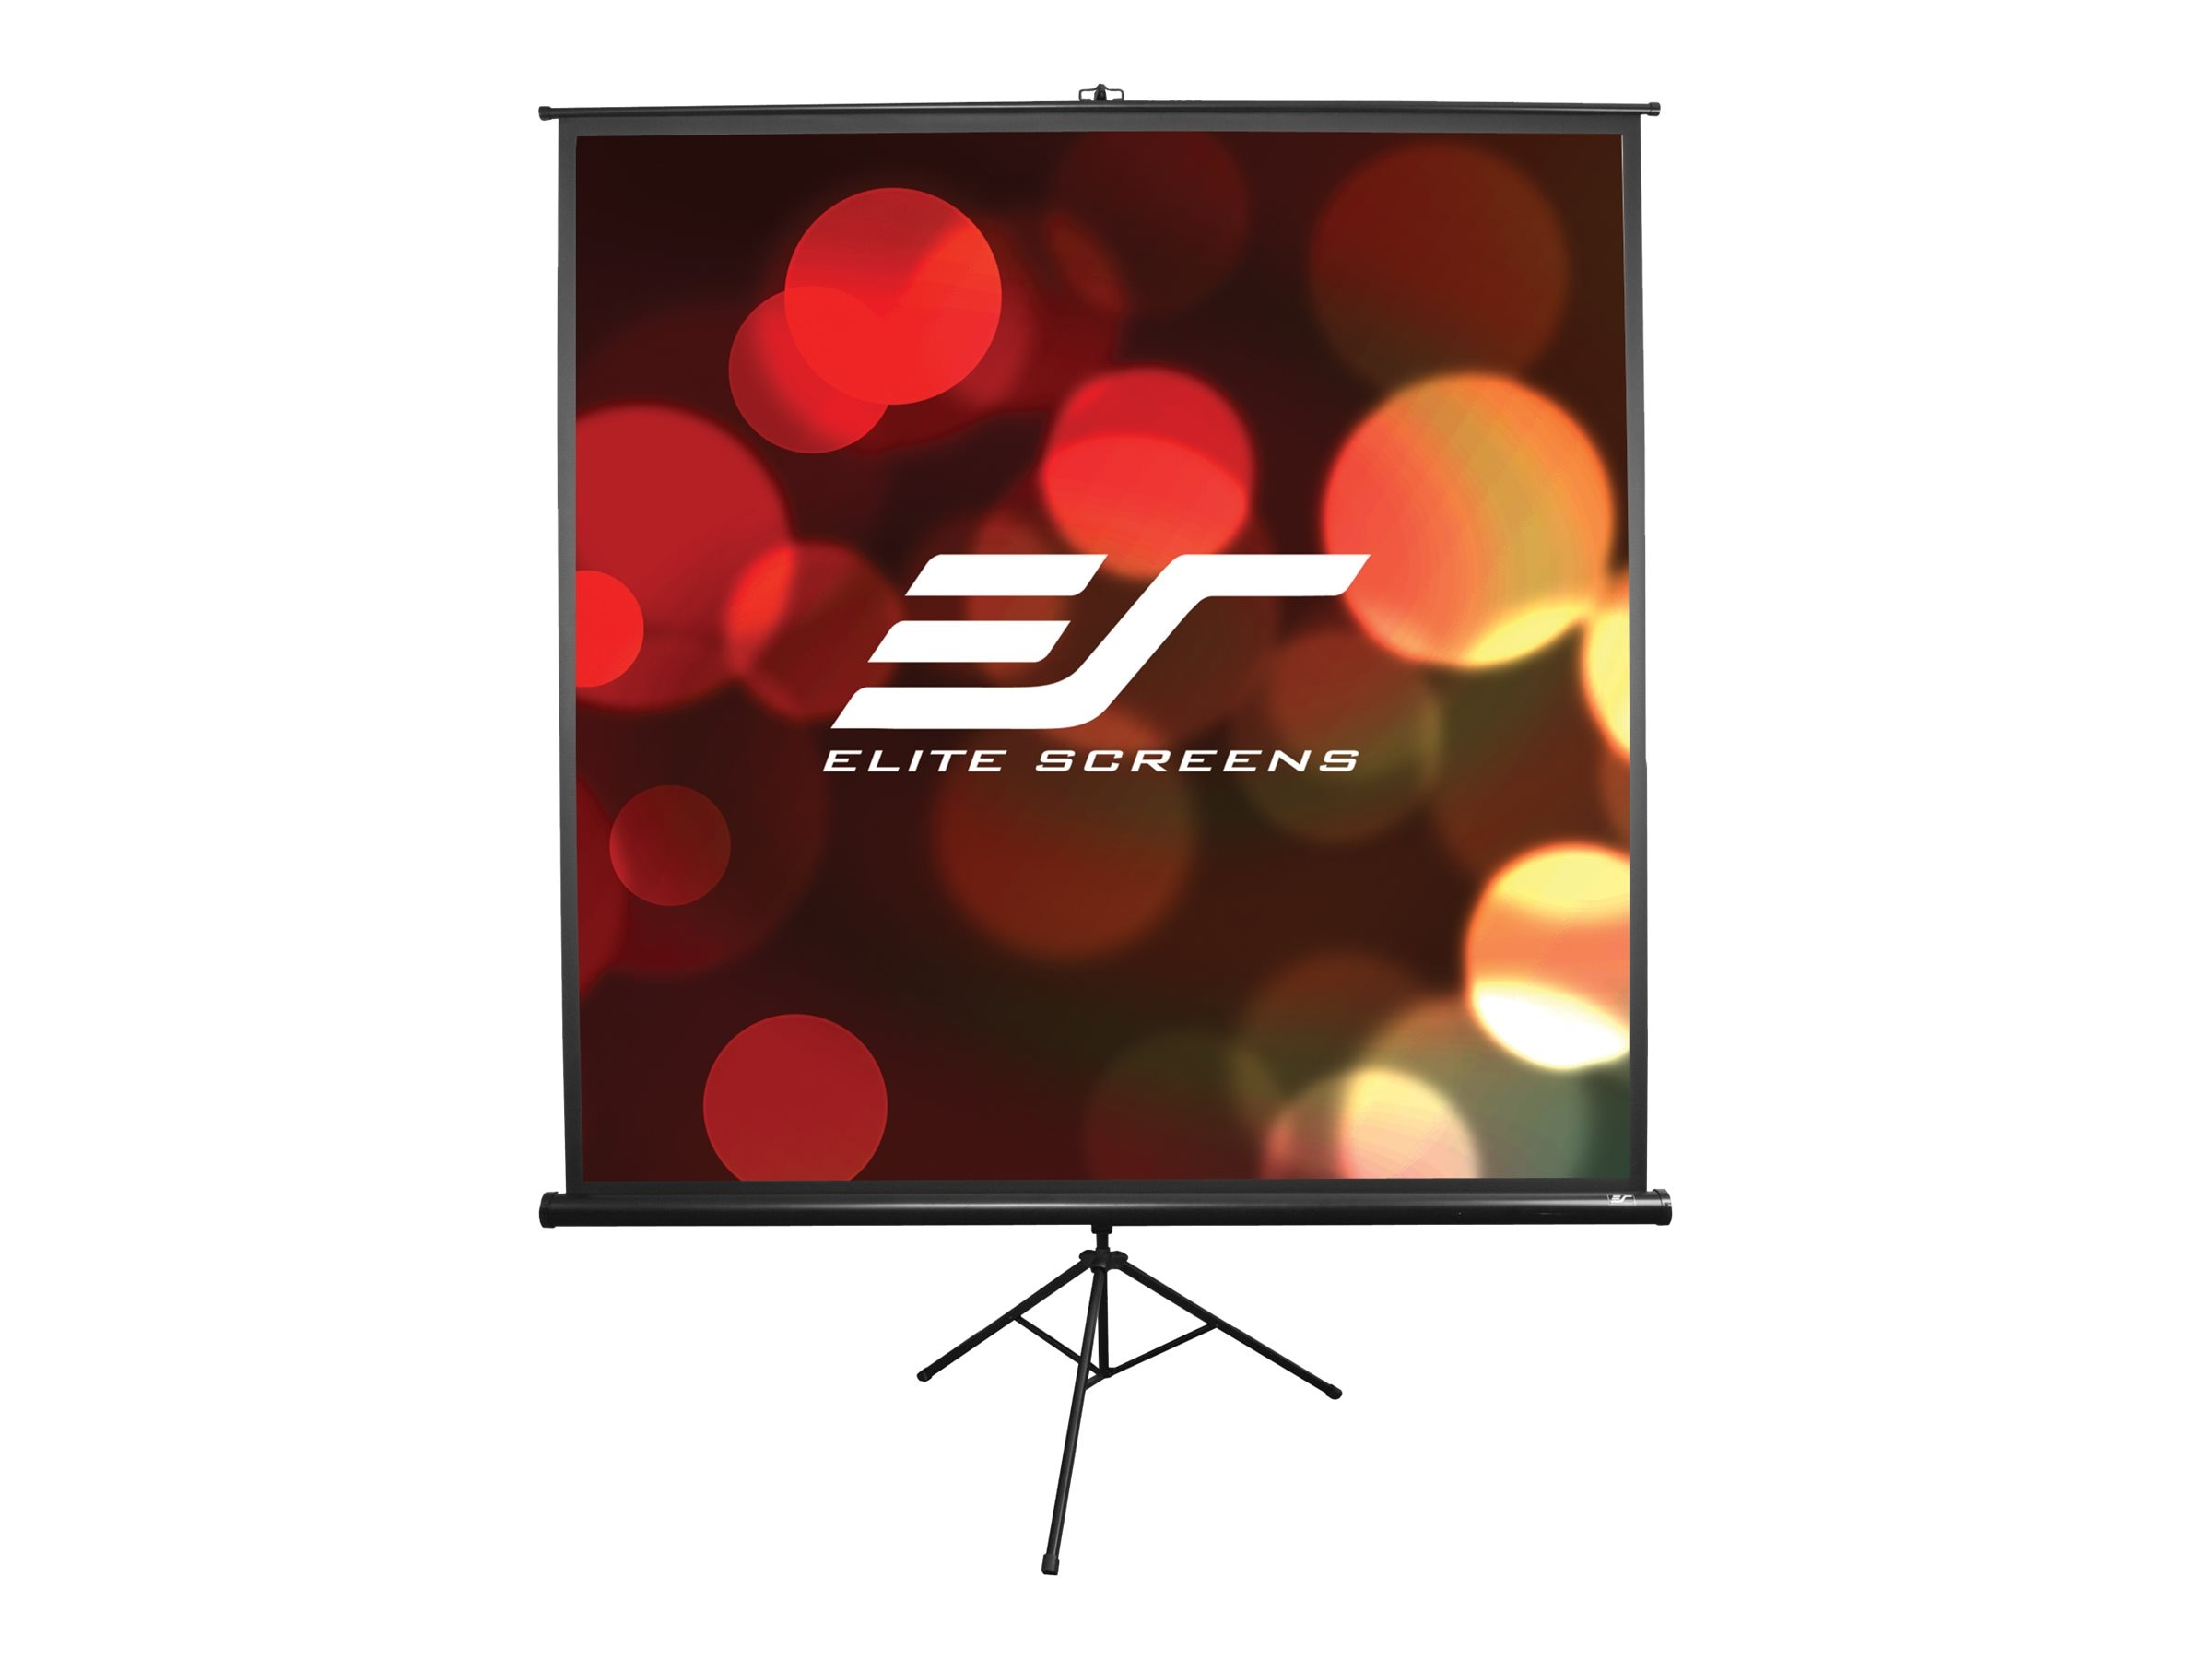 Elite Portable Tripod Pull-Up Projection Screen, Matte White, 1:1, 119in, T119UWS1, 7608975, Projector Screens